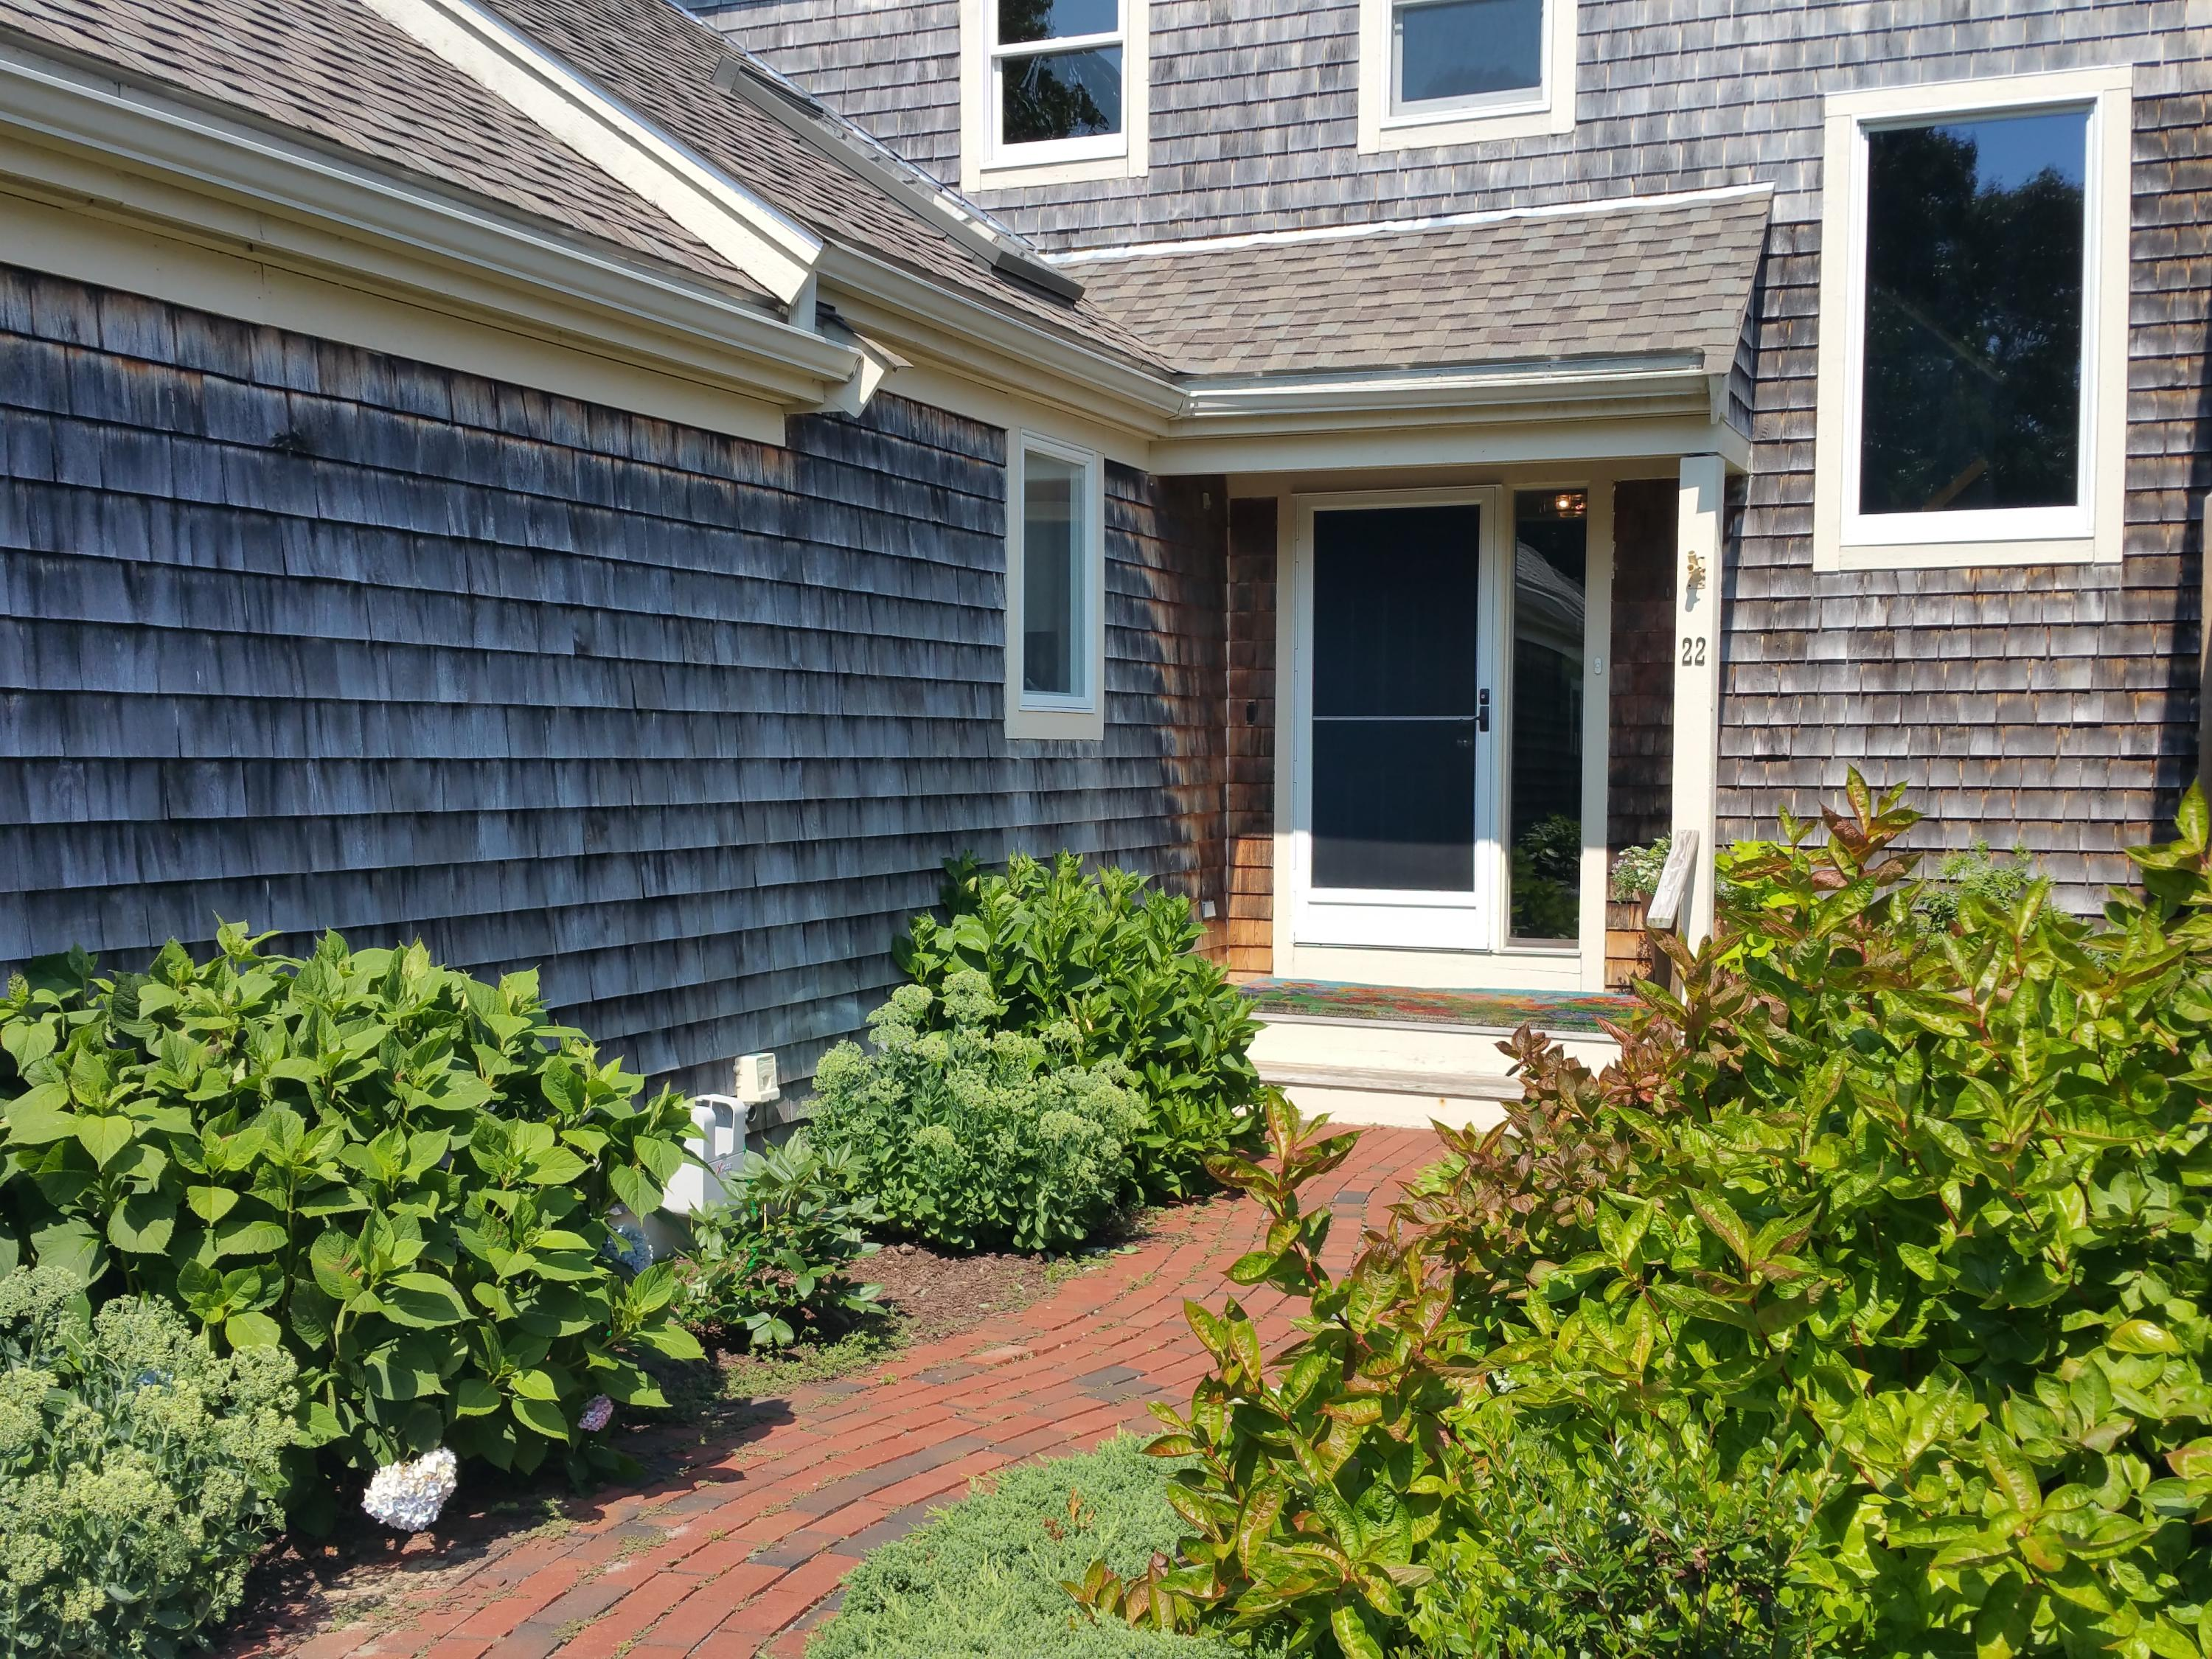 Yarmouth Real Estate - Cape Cod , 22 Boxwood Circle, Yarmouth Port MA, 02675   Listed at $567,000